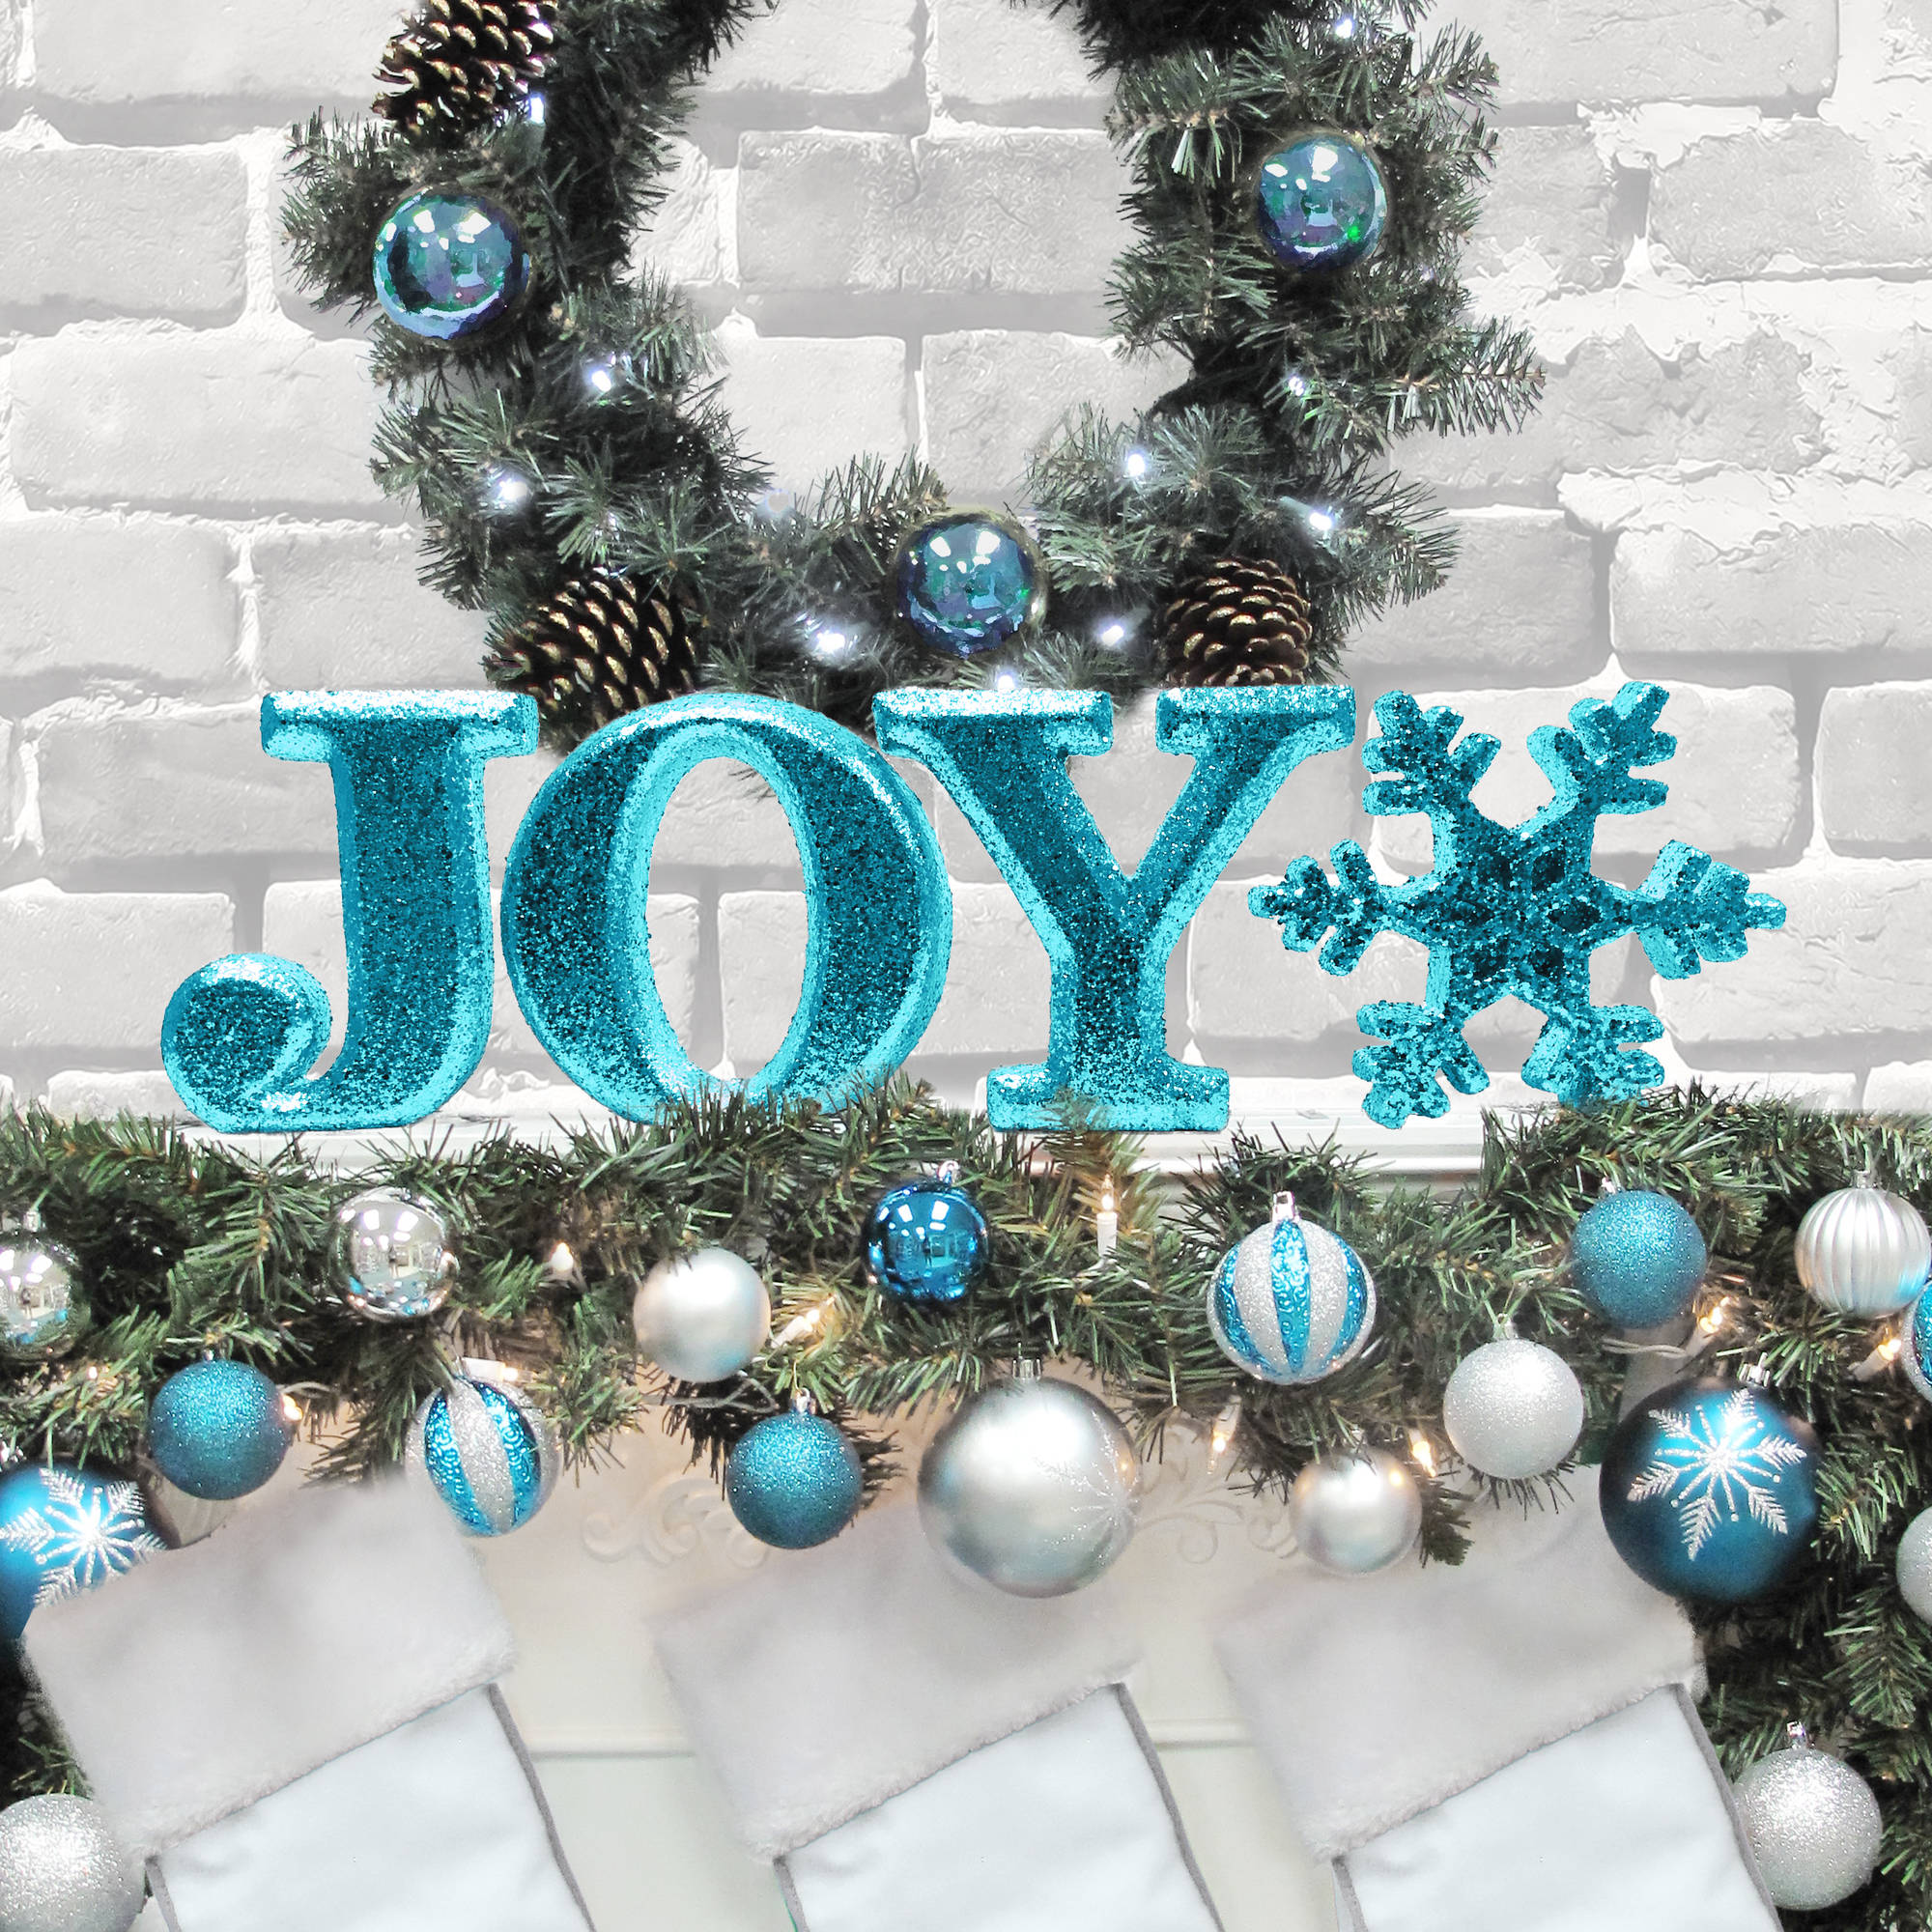 holiday time christmas decor 8 decorative joy letter set glitter teal walmartcom - Walmart Christmas Decorations